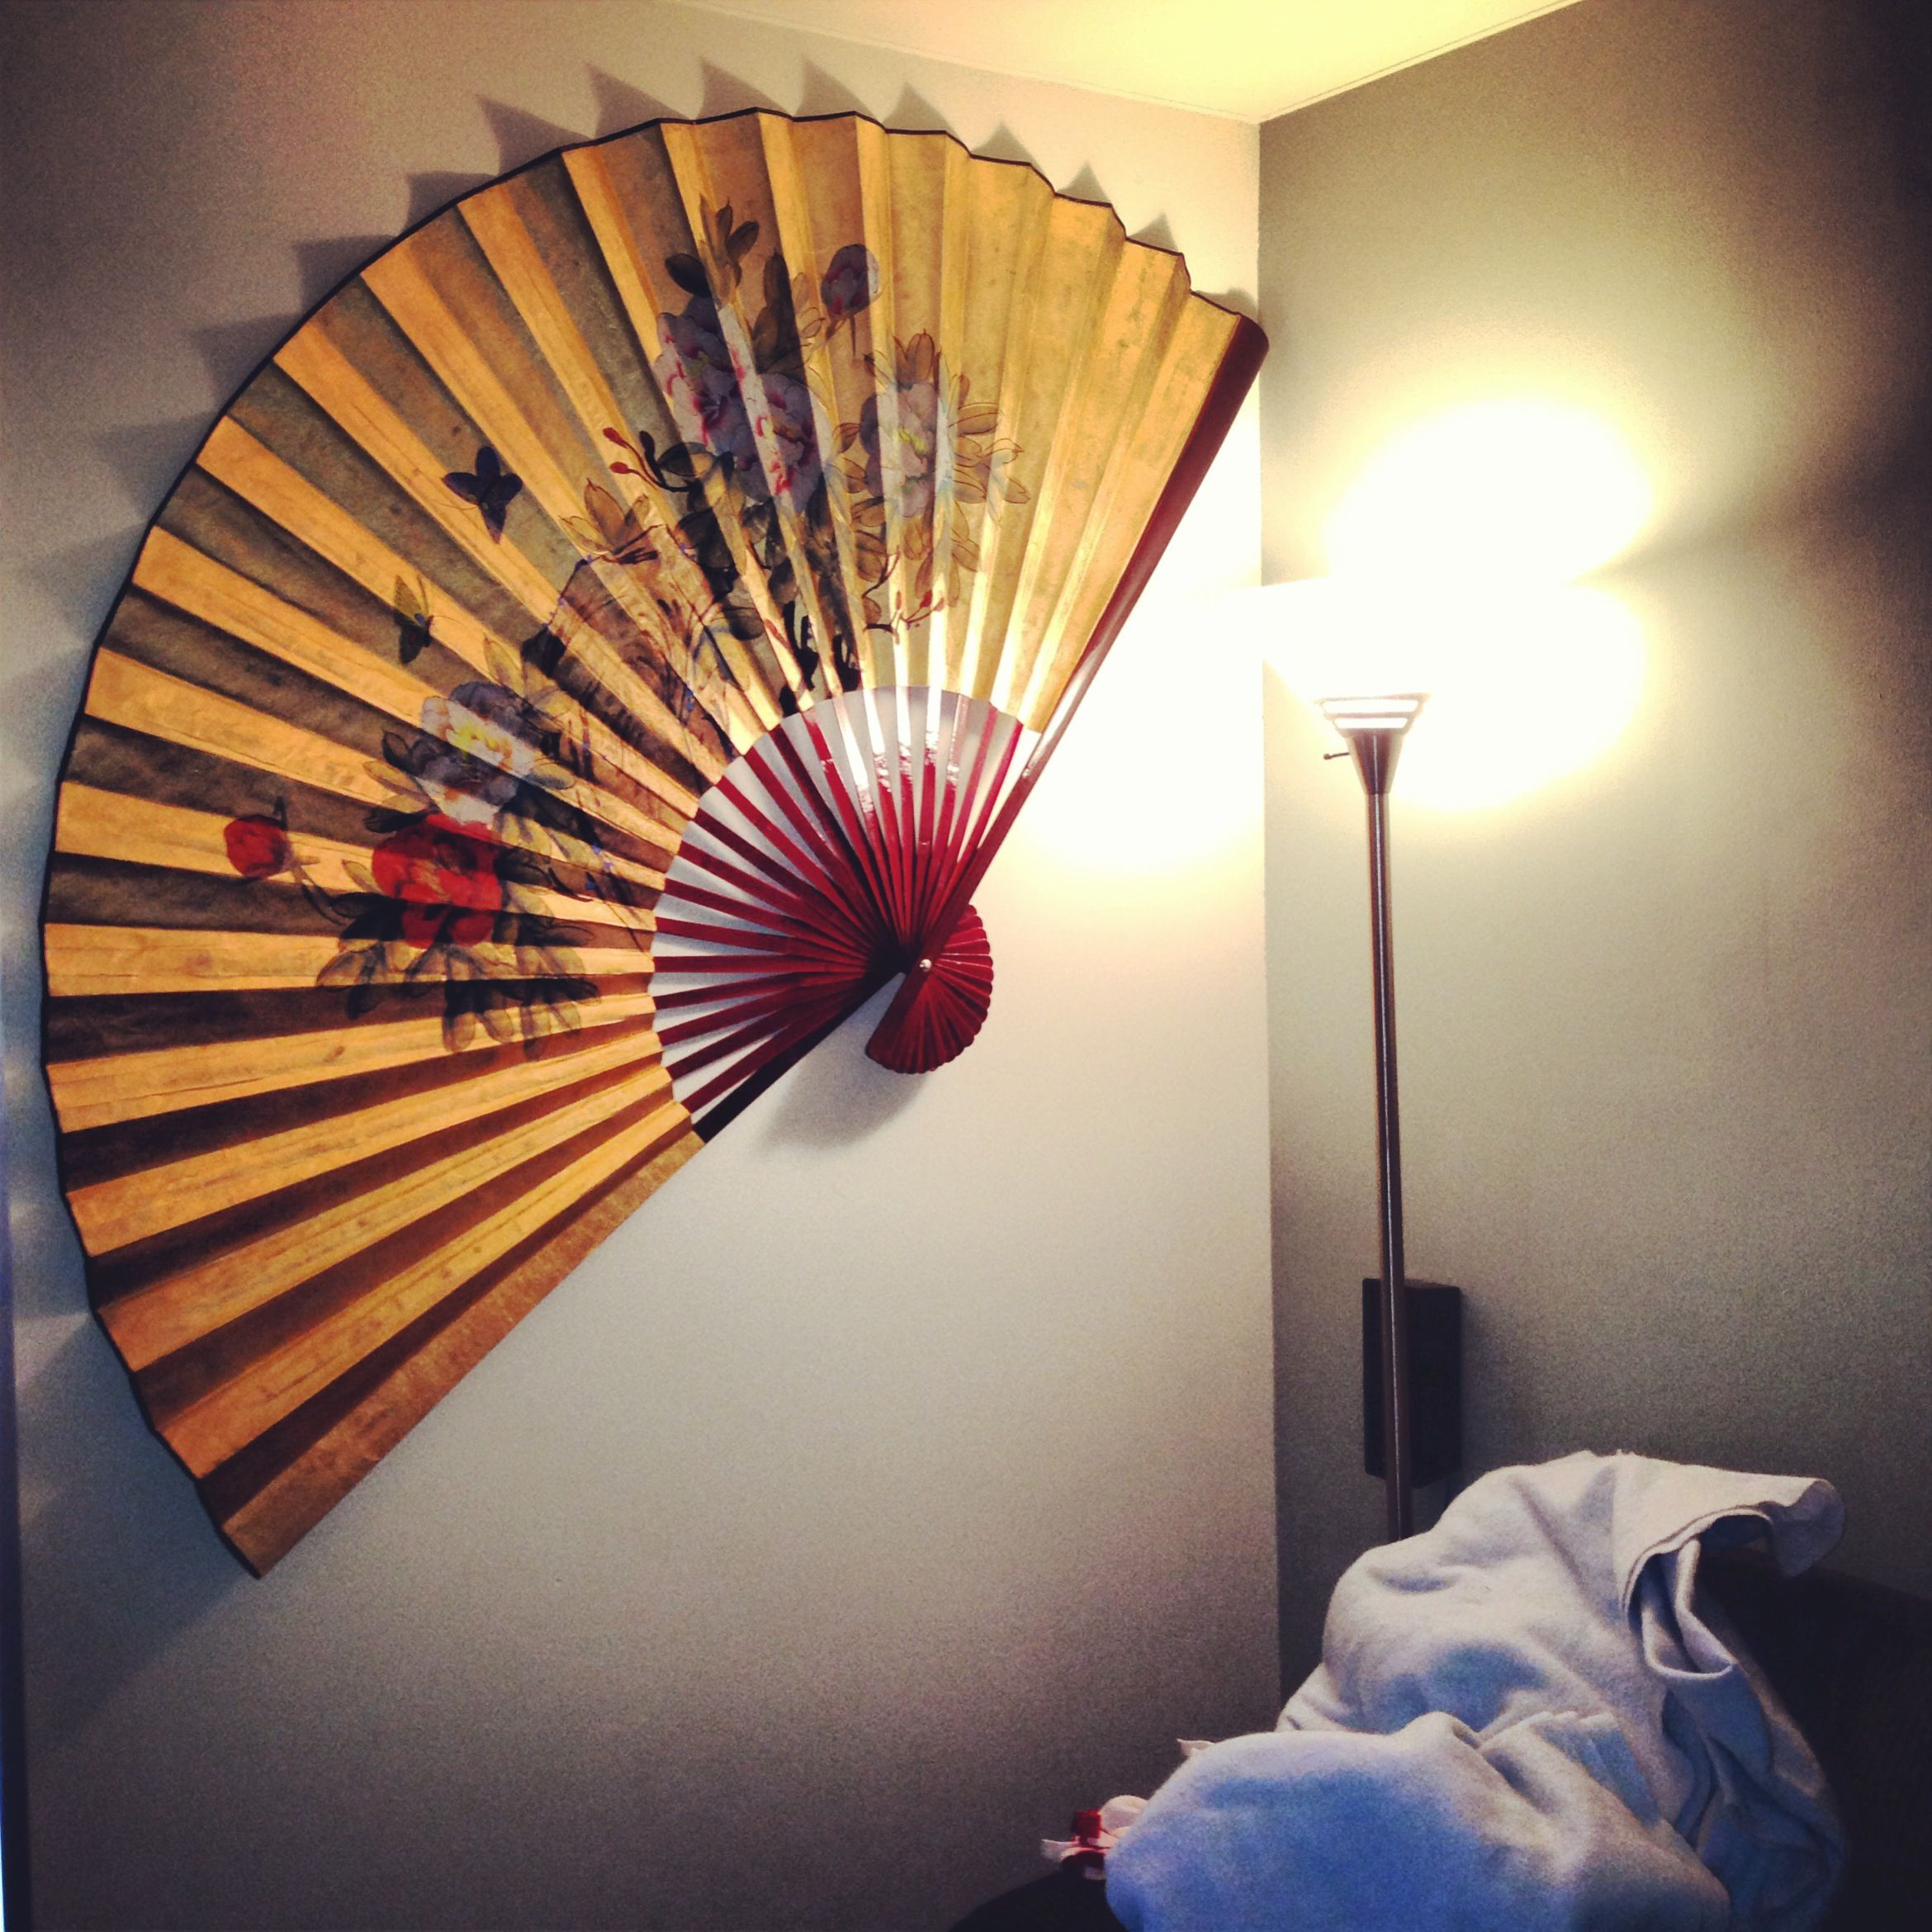 Japanese Fan Decor Japanese Decor Decor Japanese Fan